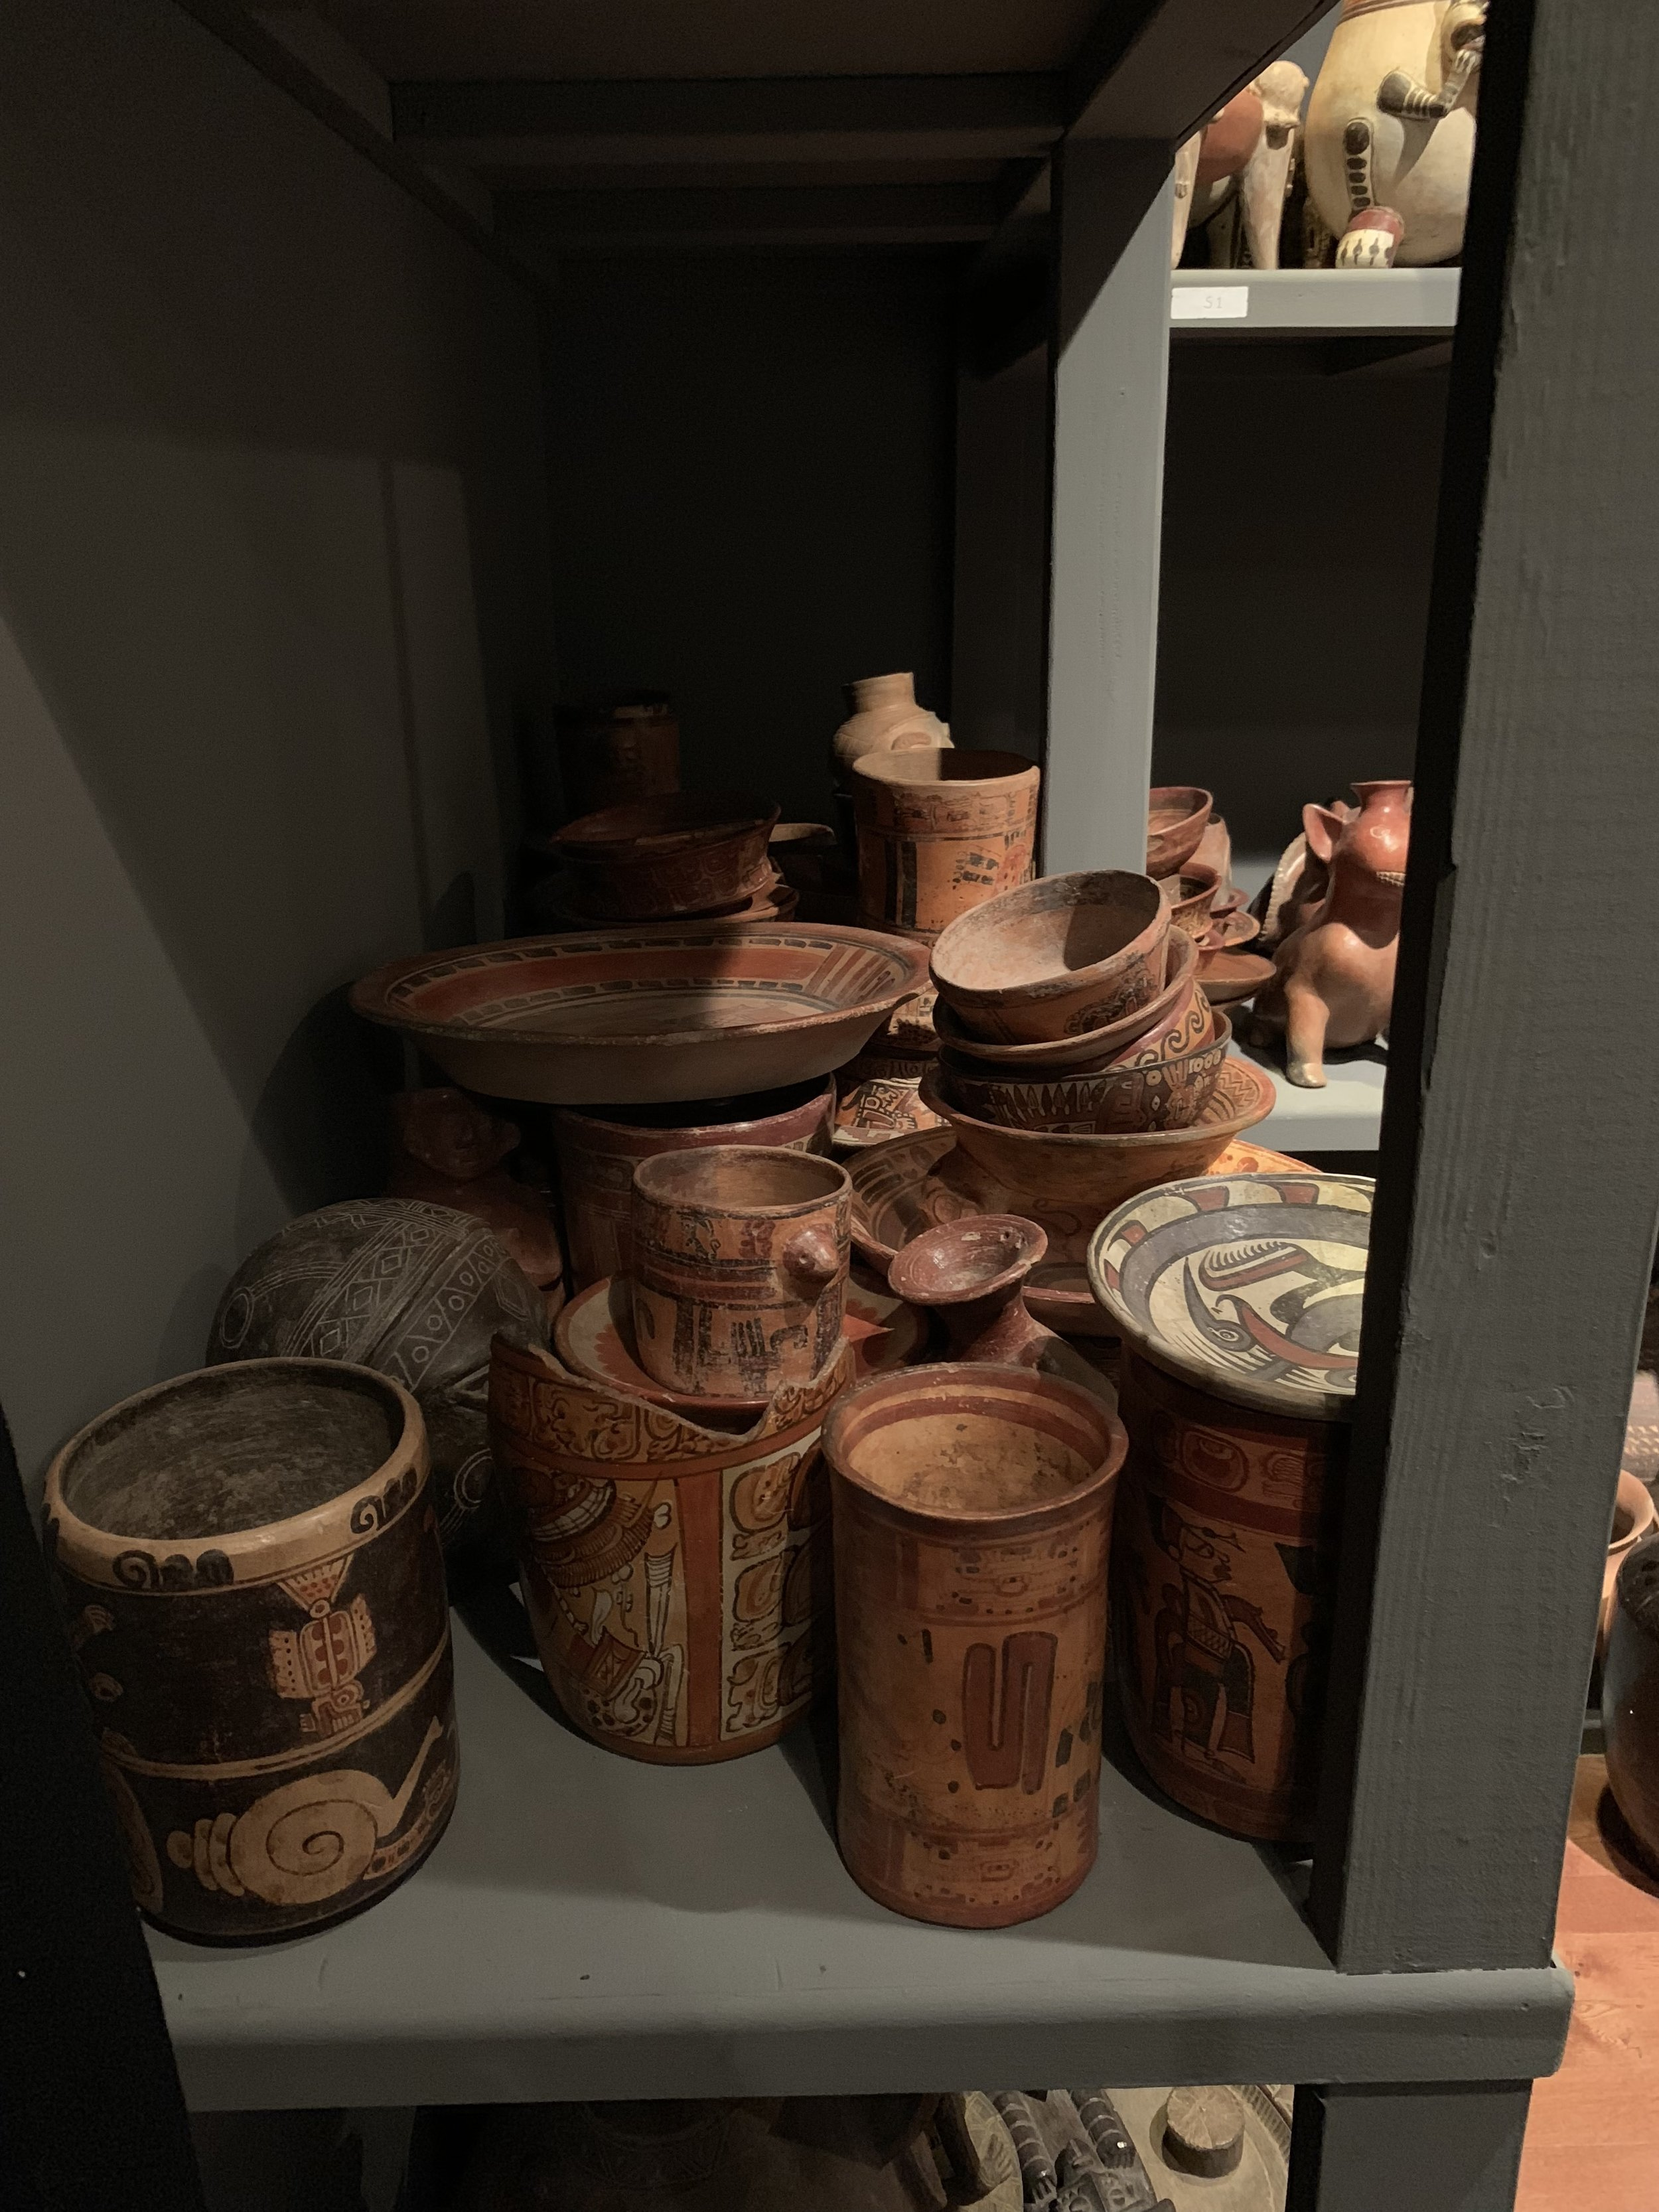 Some of the South American pottery in the back room.